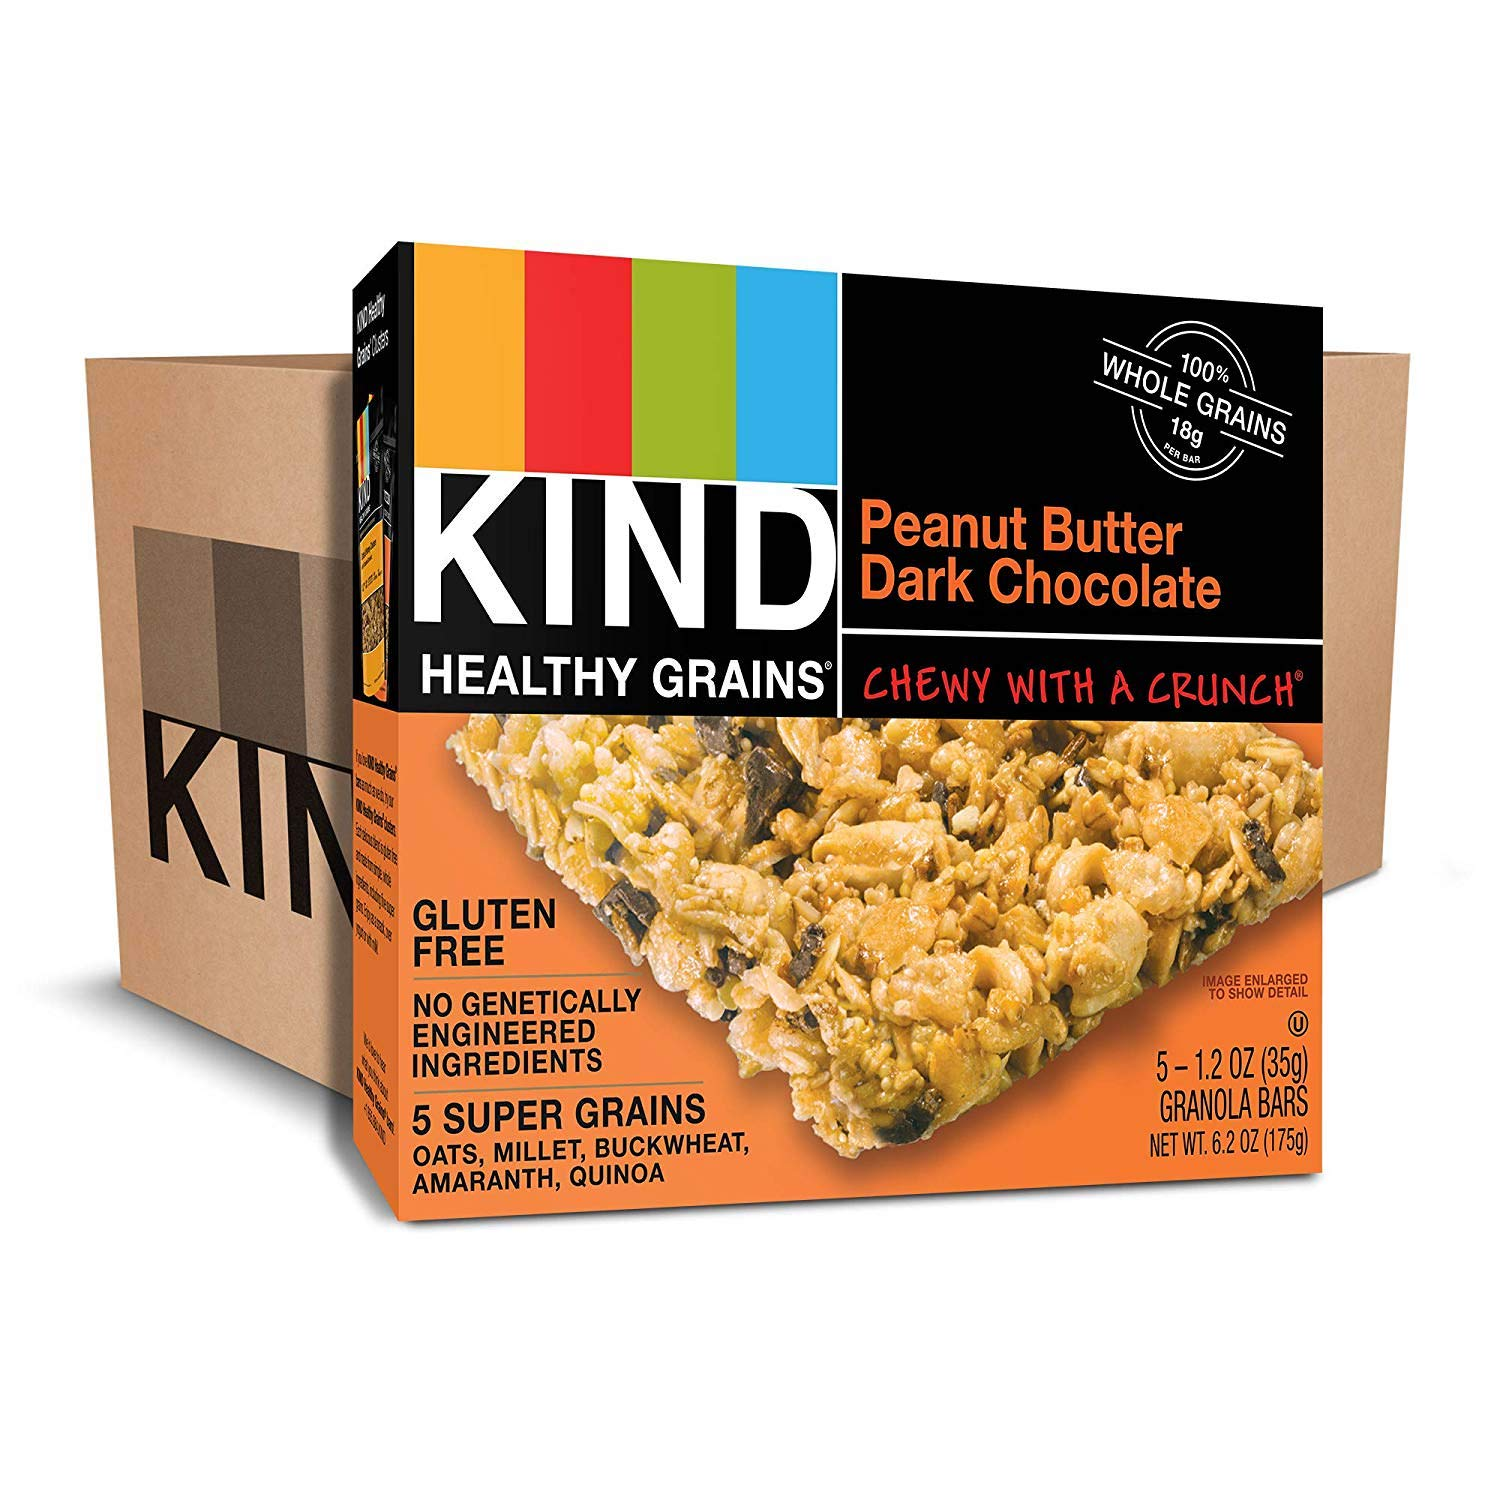 KIND Healthy Grains Bars, Peanut Butter Dark Chocolate, Non GMO, Gluten Free, 1.2 oz, 5 Count (30 Boxes) by KIND (Image #1)